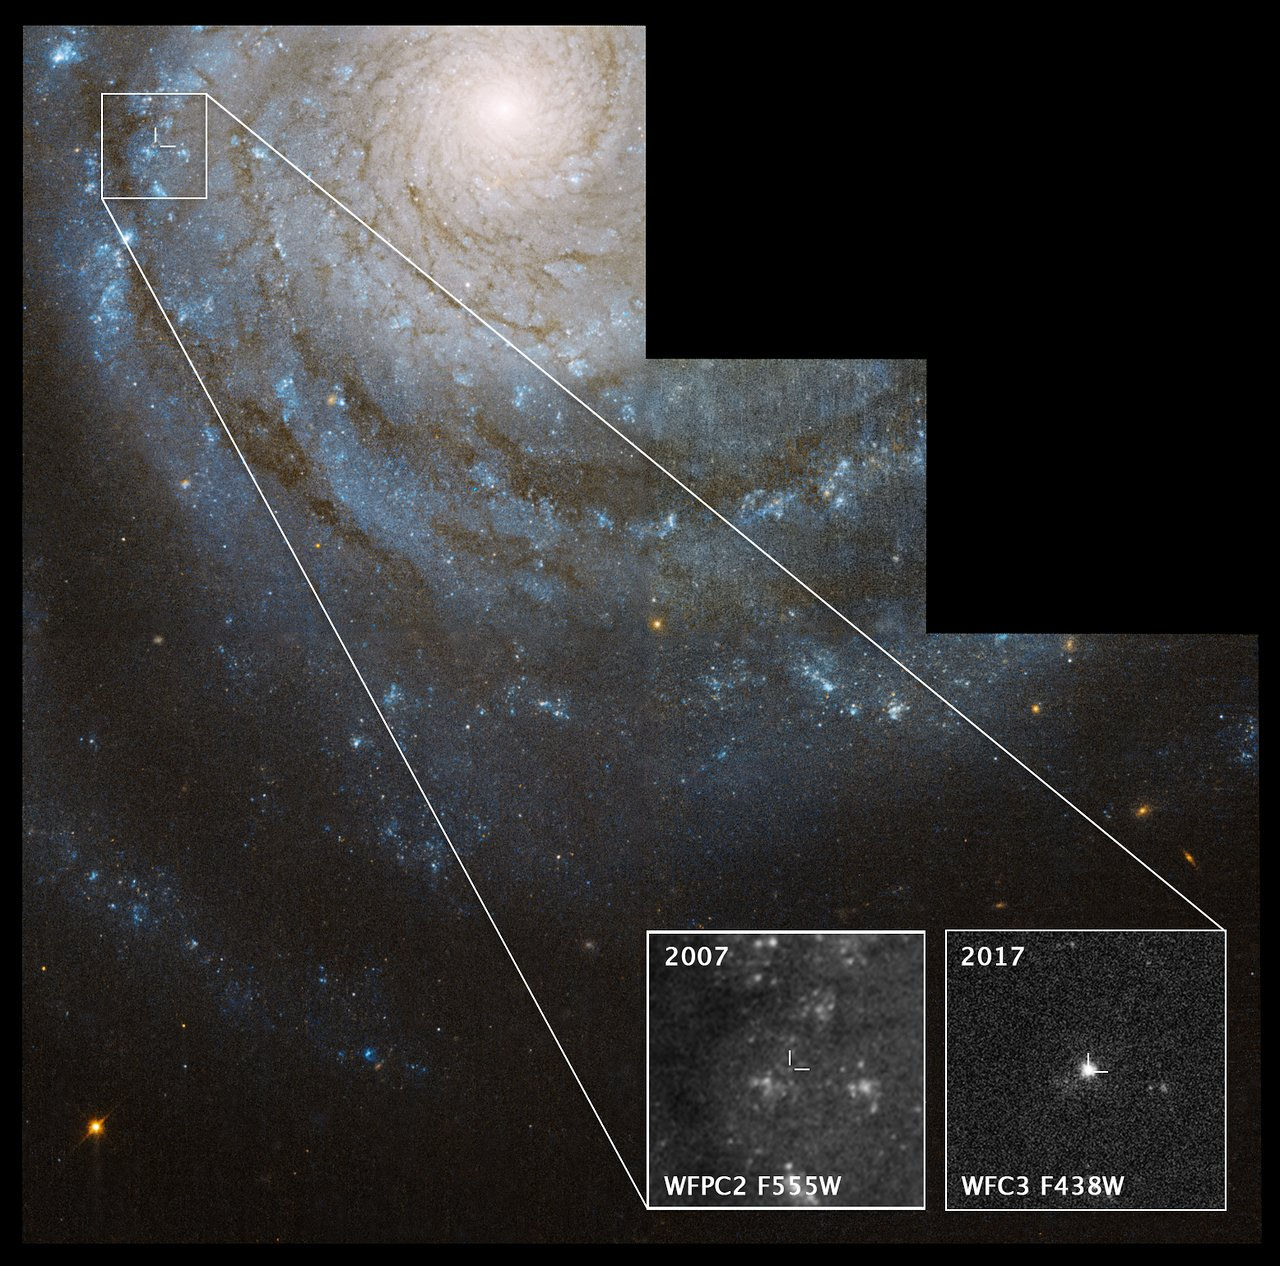 Astronomers find a supernova's progenitor star in Hubble images